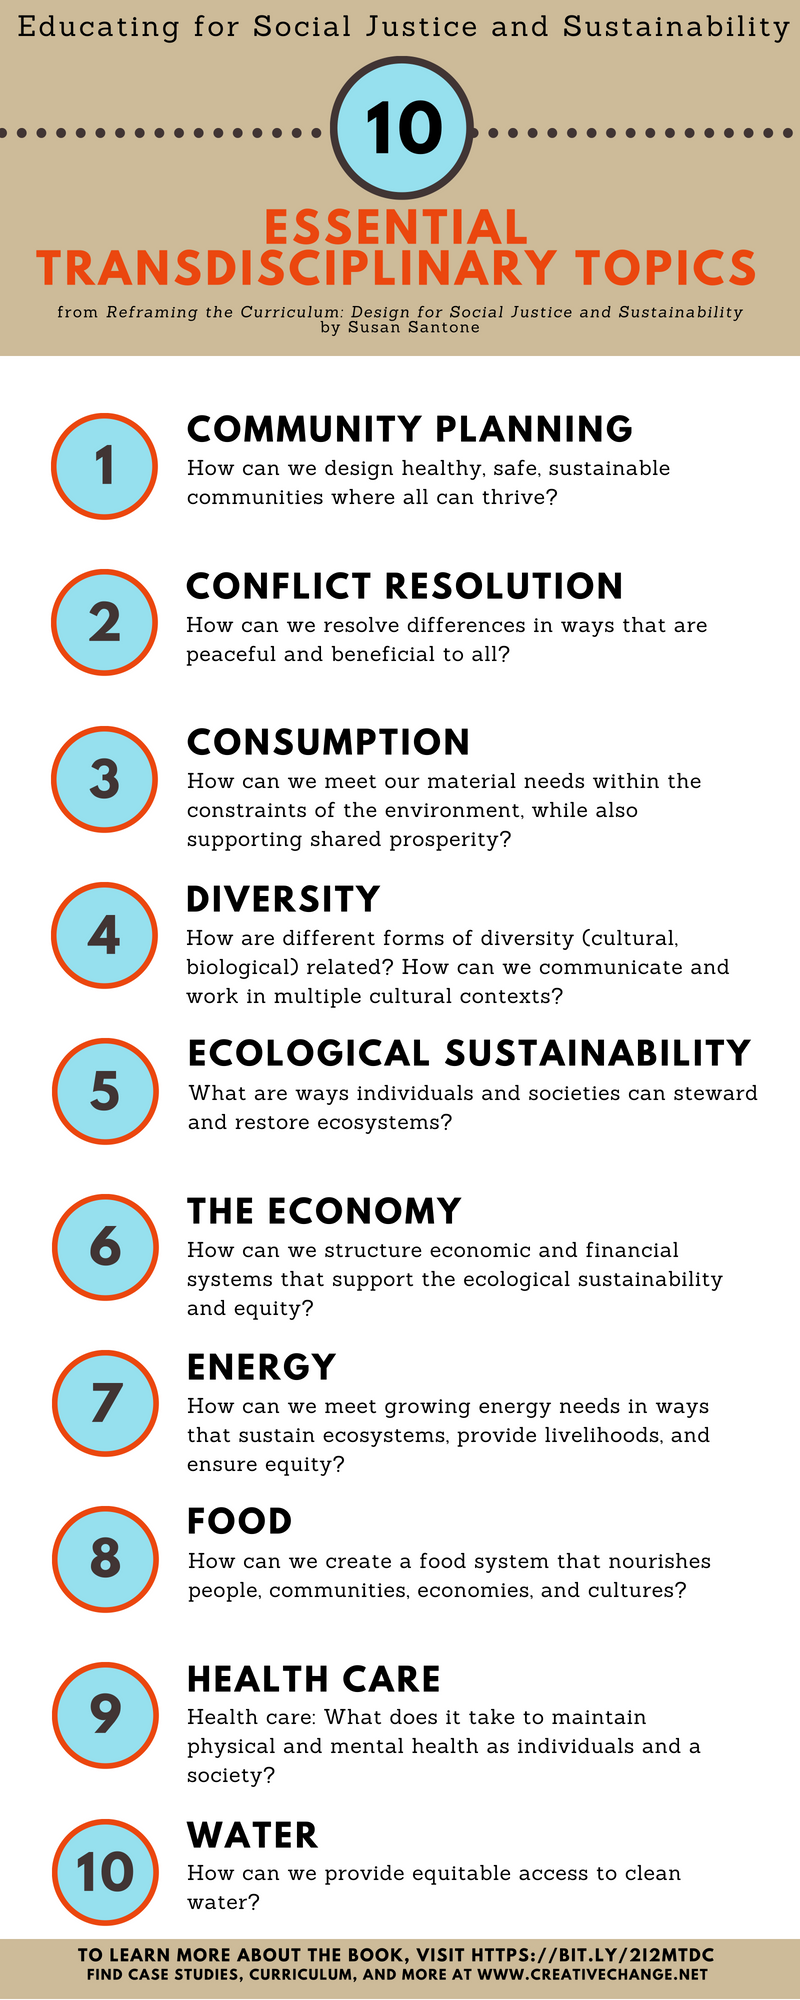 Essential Curriculum Topics For Sustainability And Socialjustice Learn How To Teach These Topics Across Discipline Social Justice Curriculum Sustainability